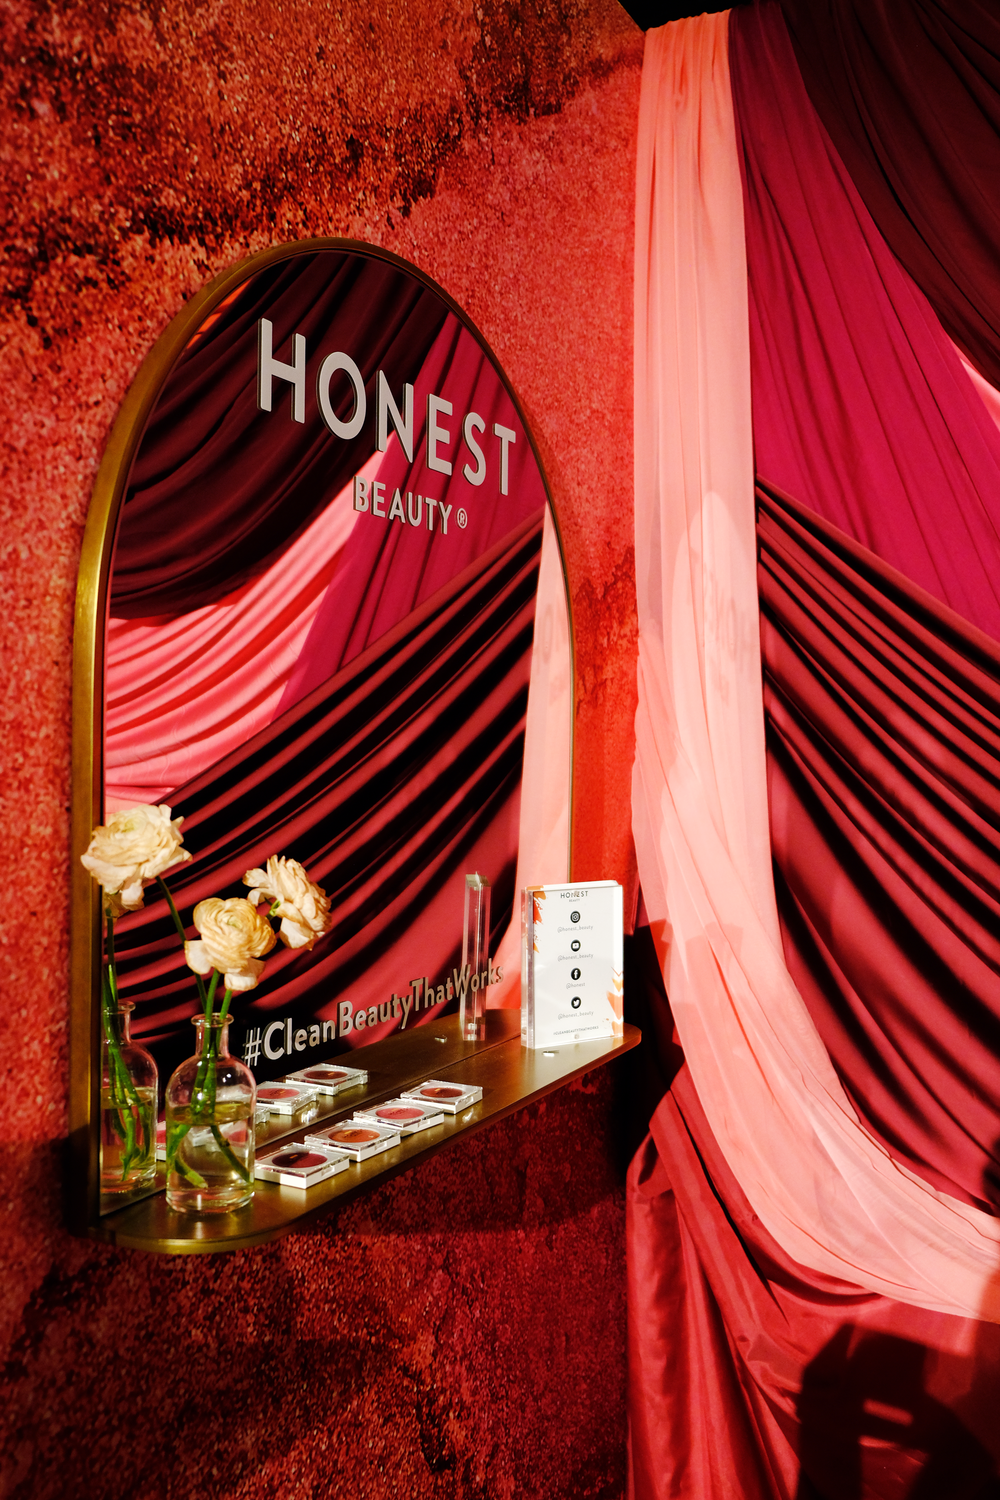 Honest-booth-tradeshow-booth-design-5